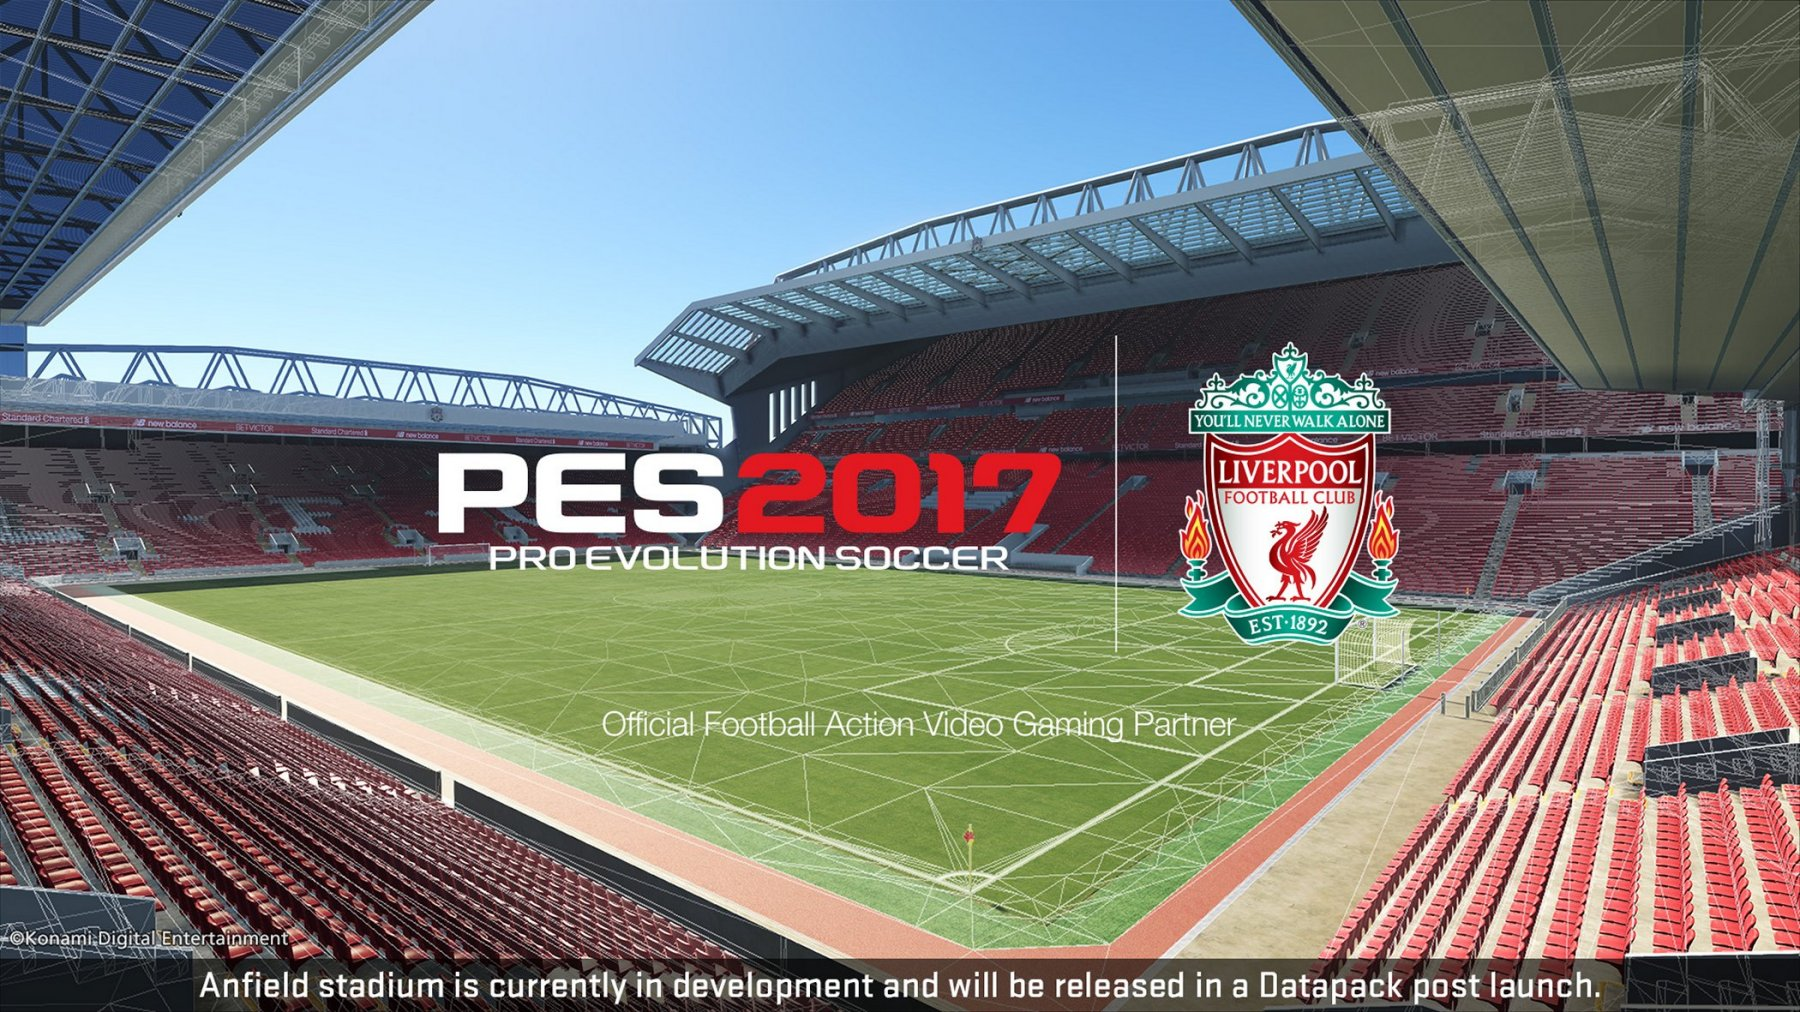 PES2017-LFC-Announcement-Anfield-02